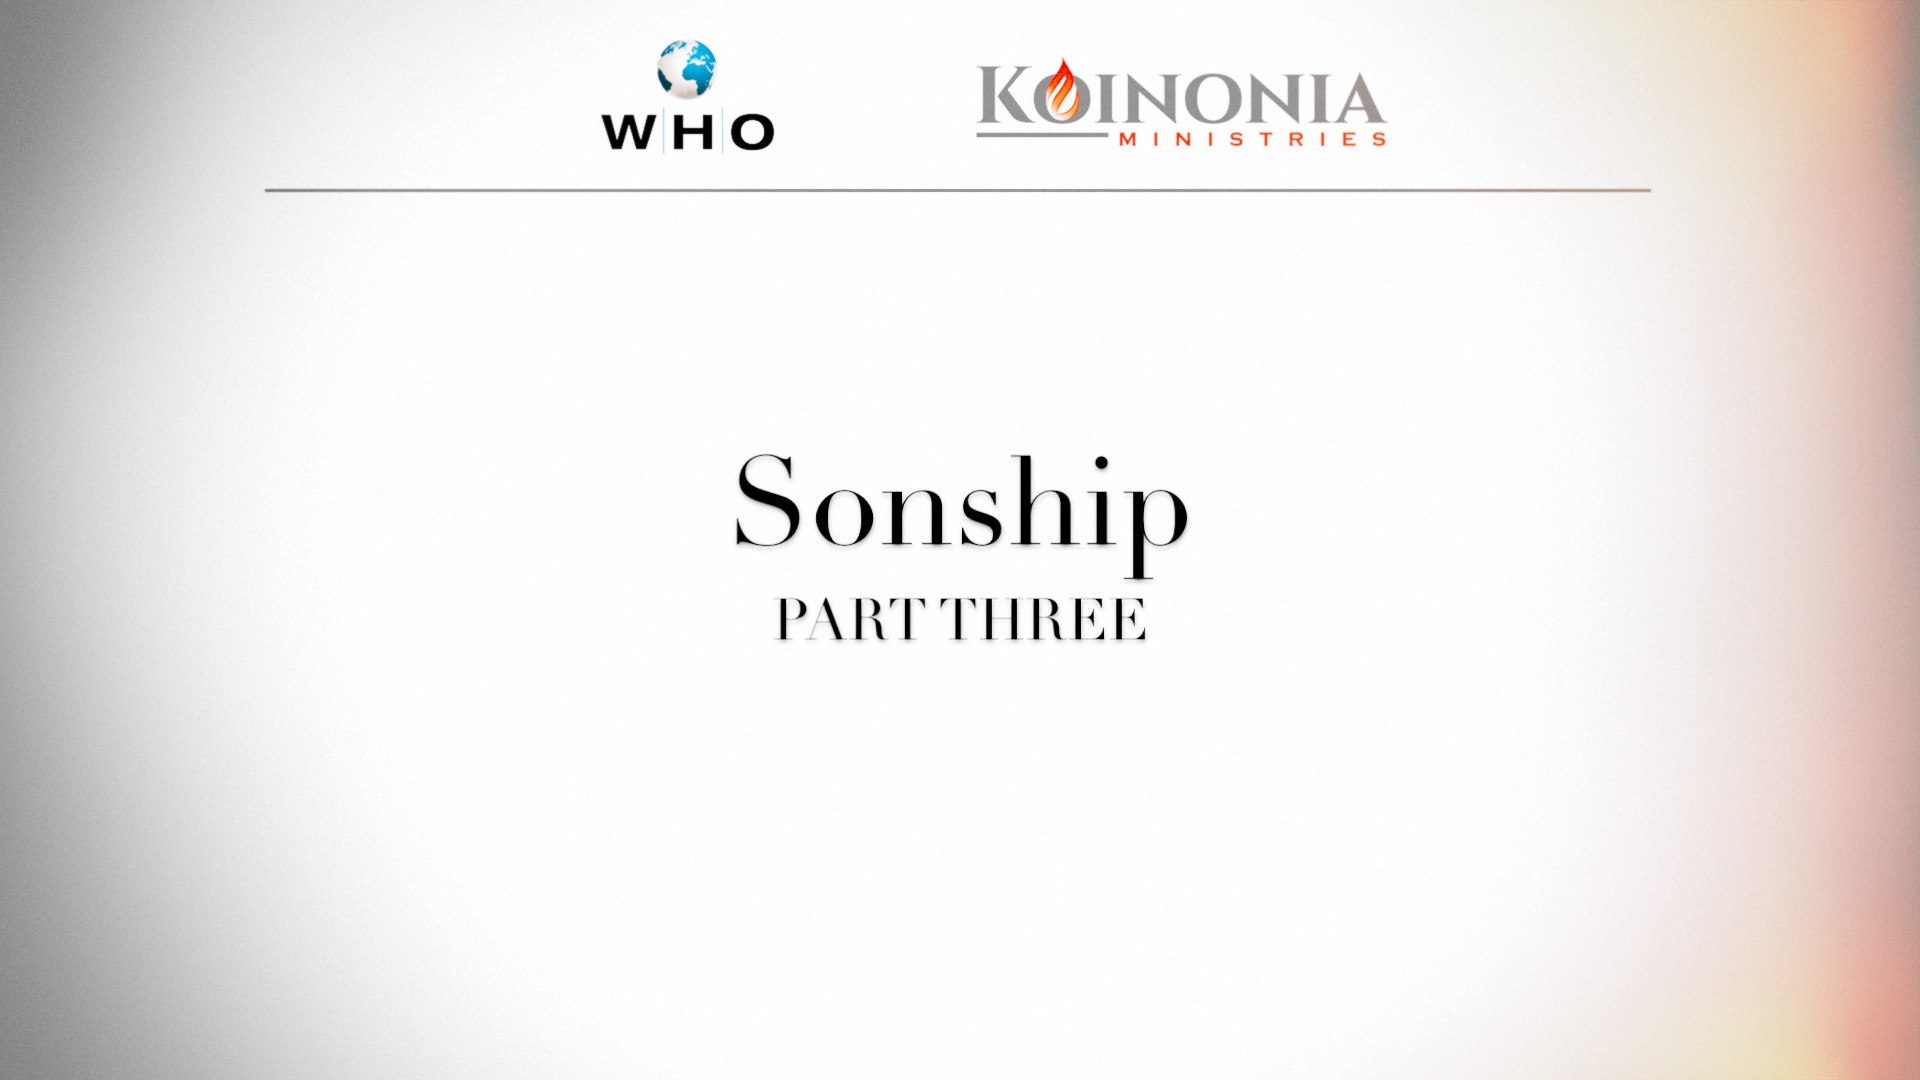 Sonship, Part 3 of 4